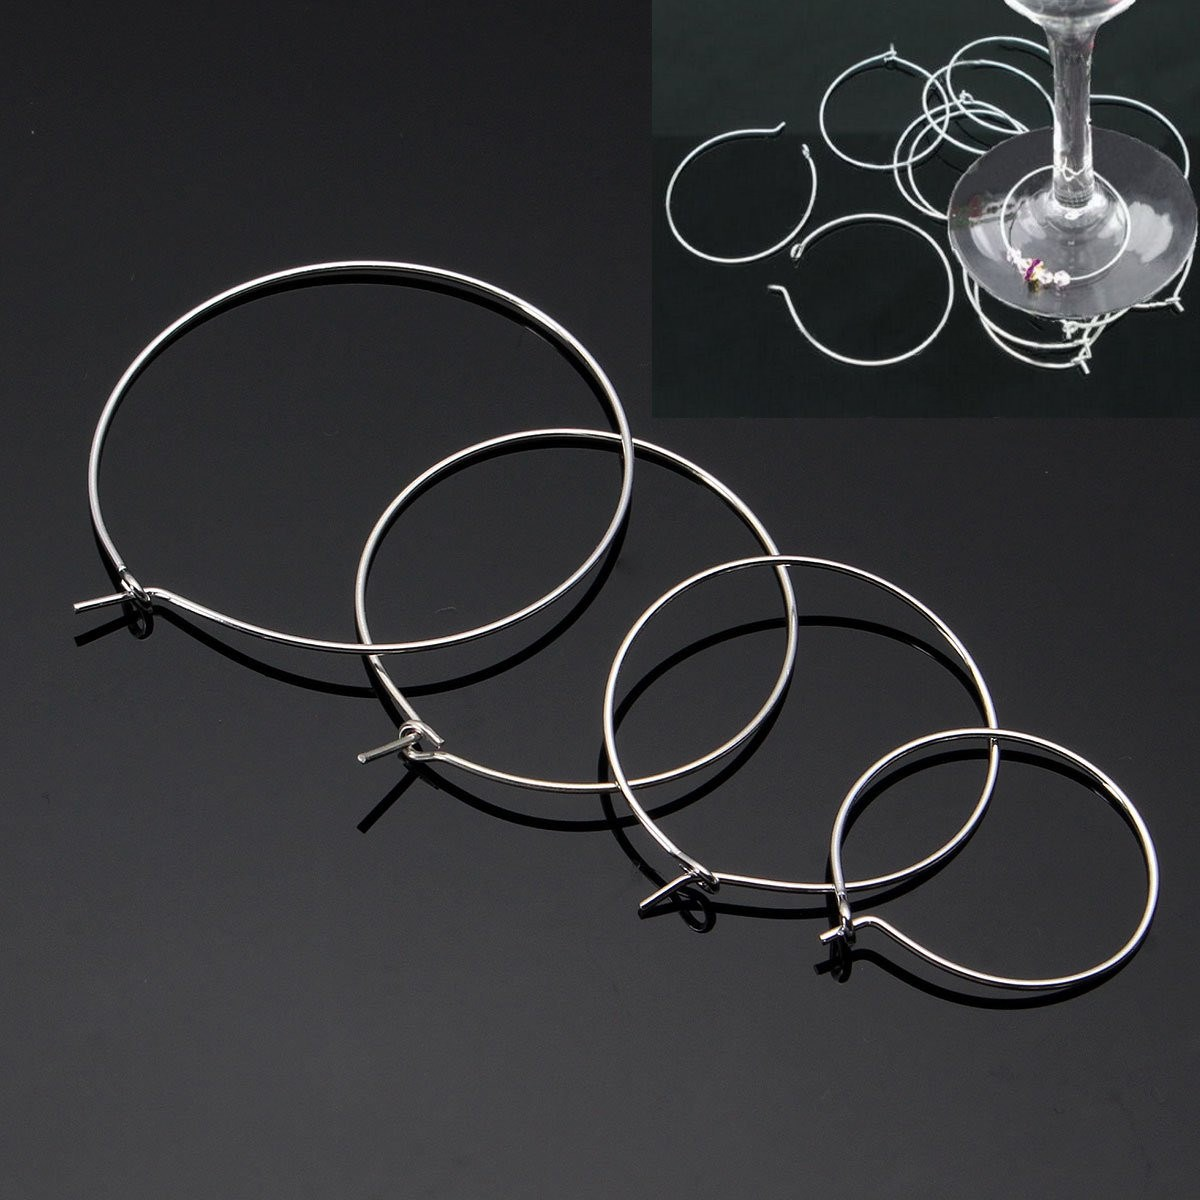 100pcs Silver Plated Wine Glass Charm Rings DIY Wire Hoops Drink ...